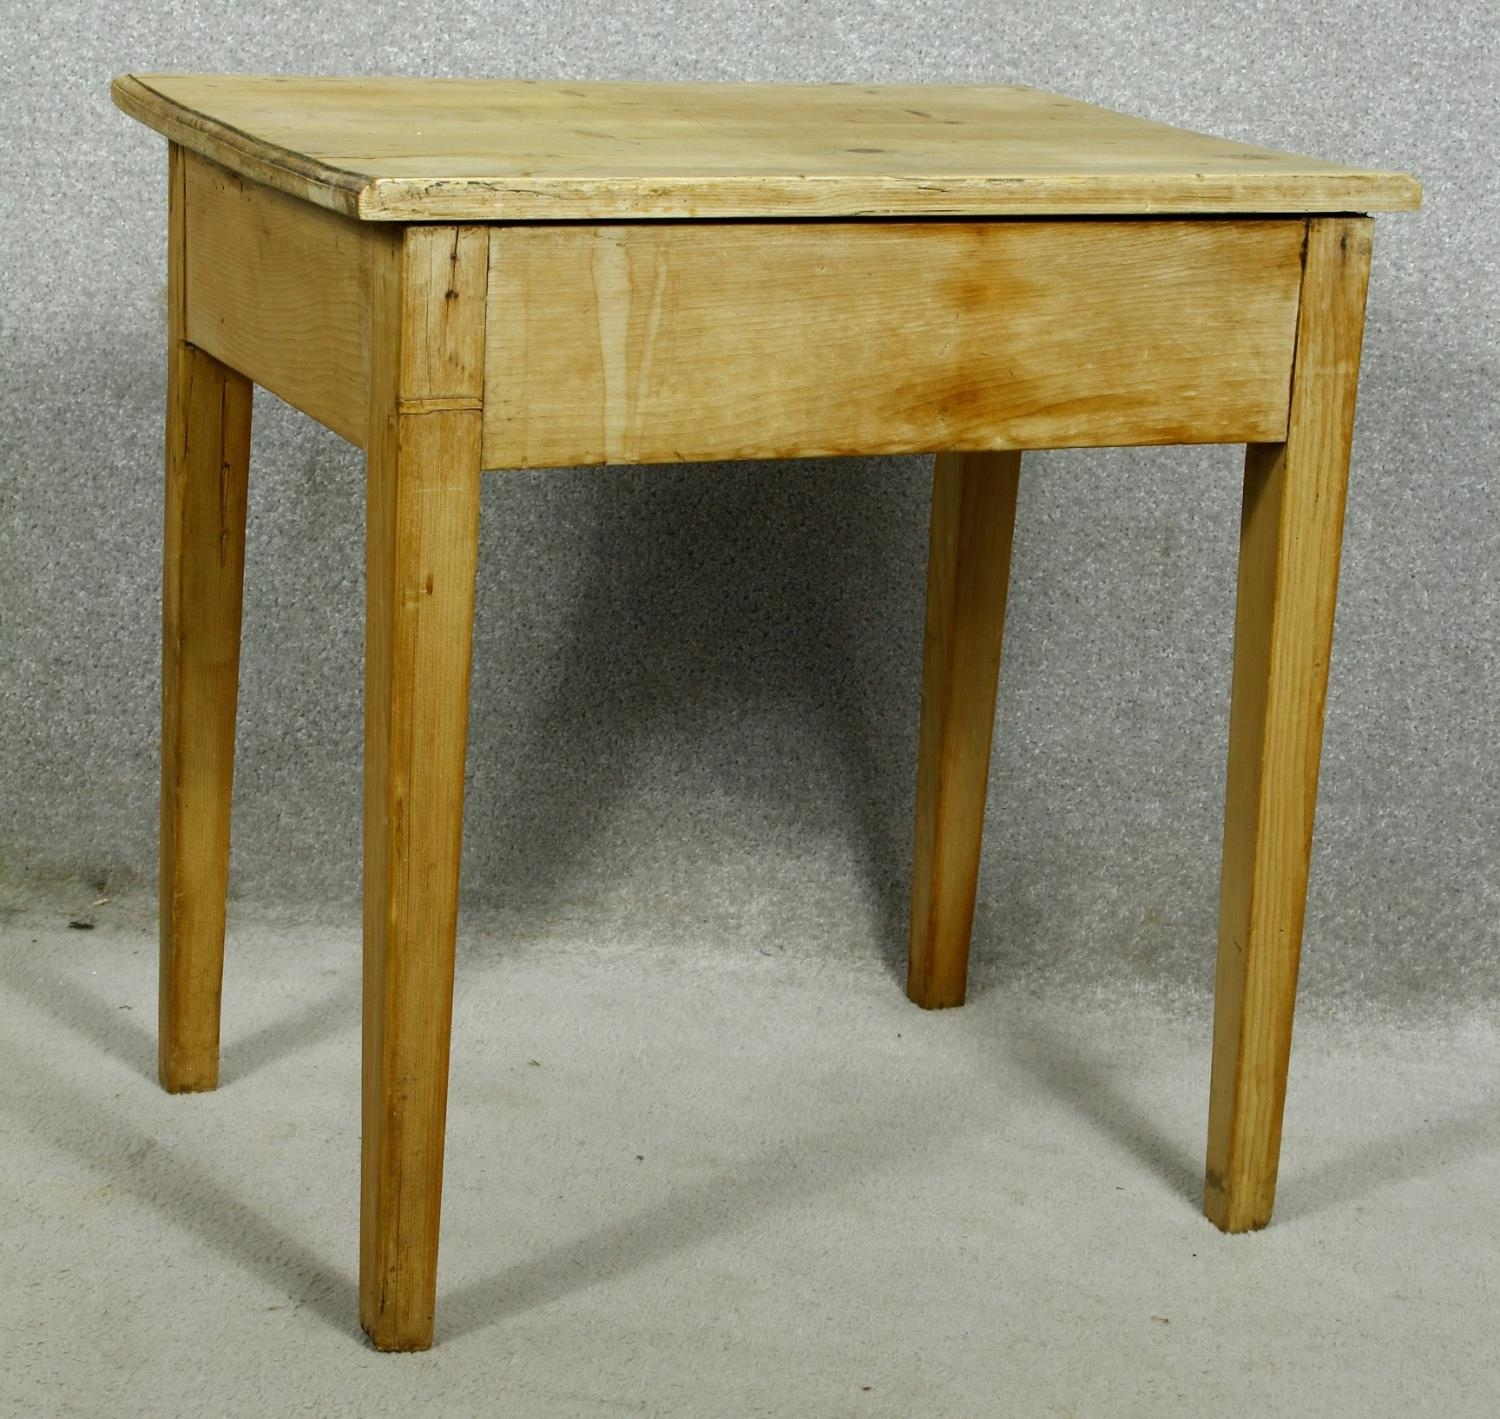 A 19th century pine side table with frieze drawers on square tapering supports. H.63 W.63 D.45cm - Image 6 of 7